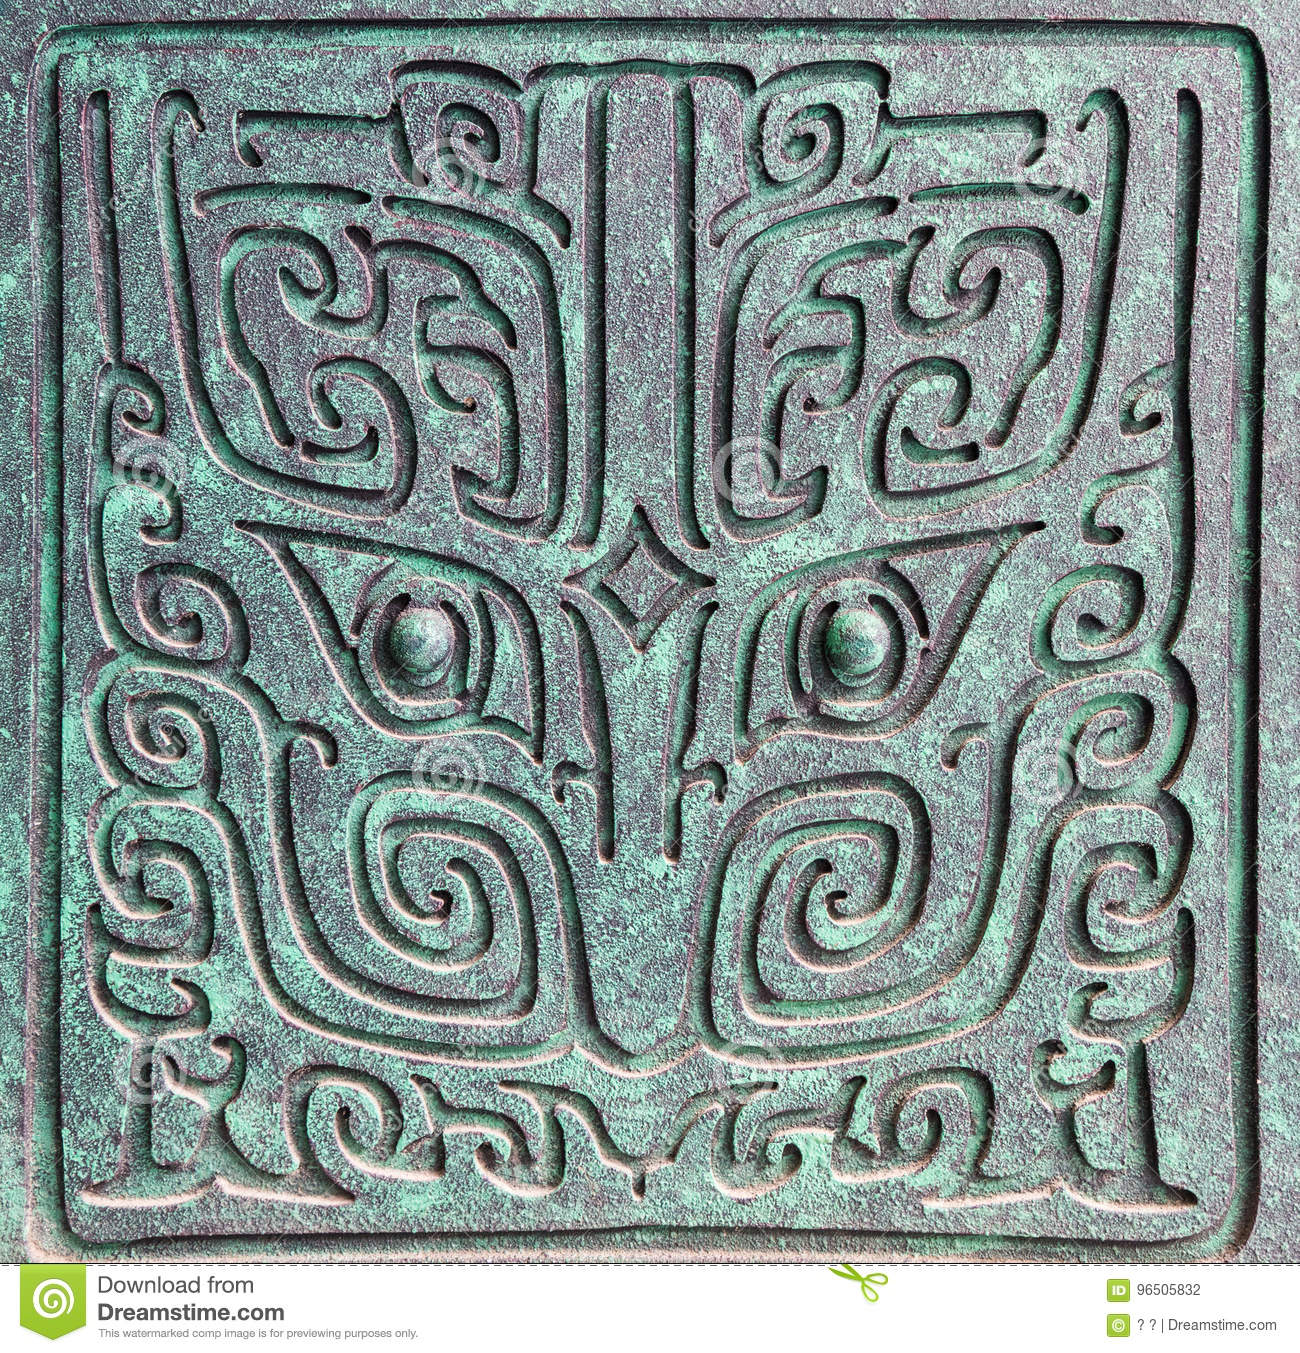 Chinese shang dynasty bronze ware decoration patterns